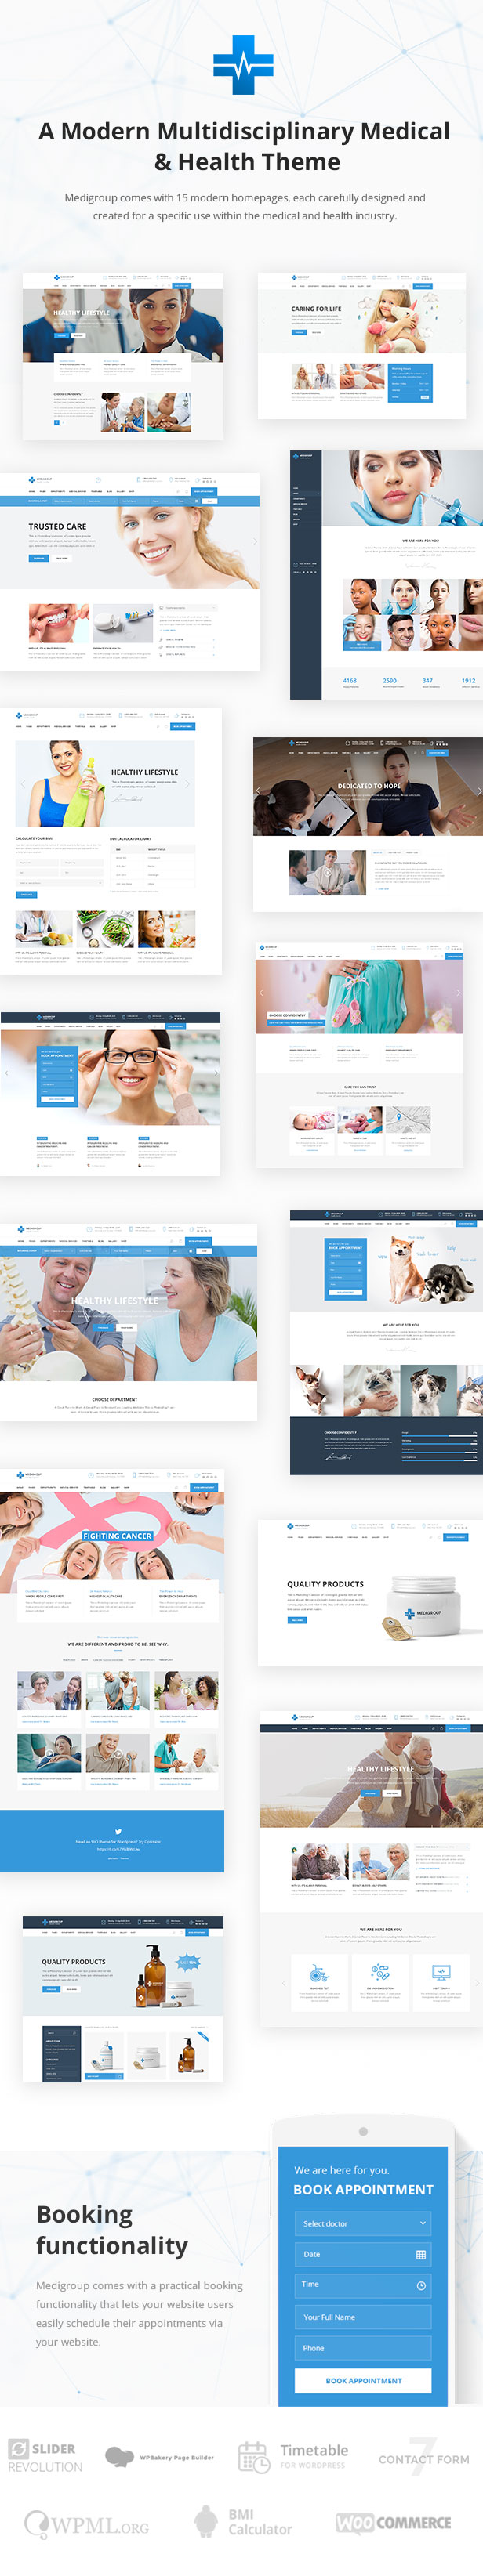 Medigroup - Medical and Health Theme - 1